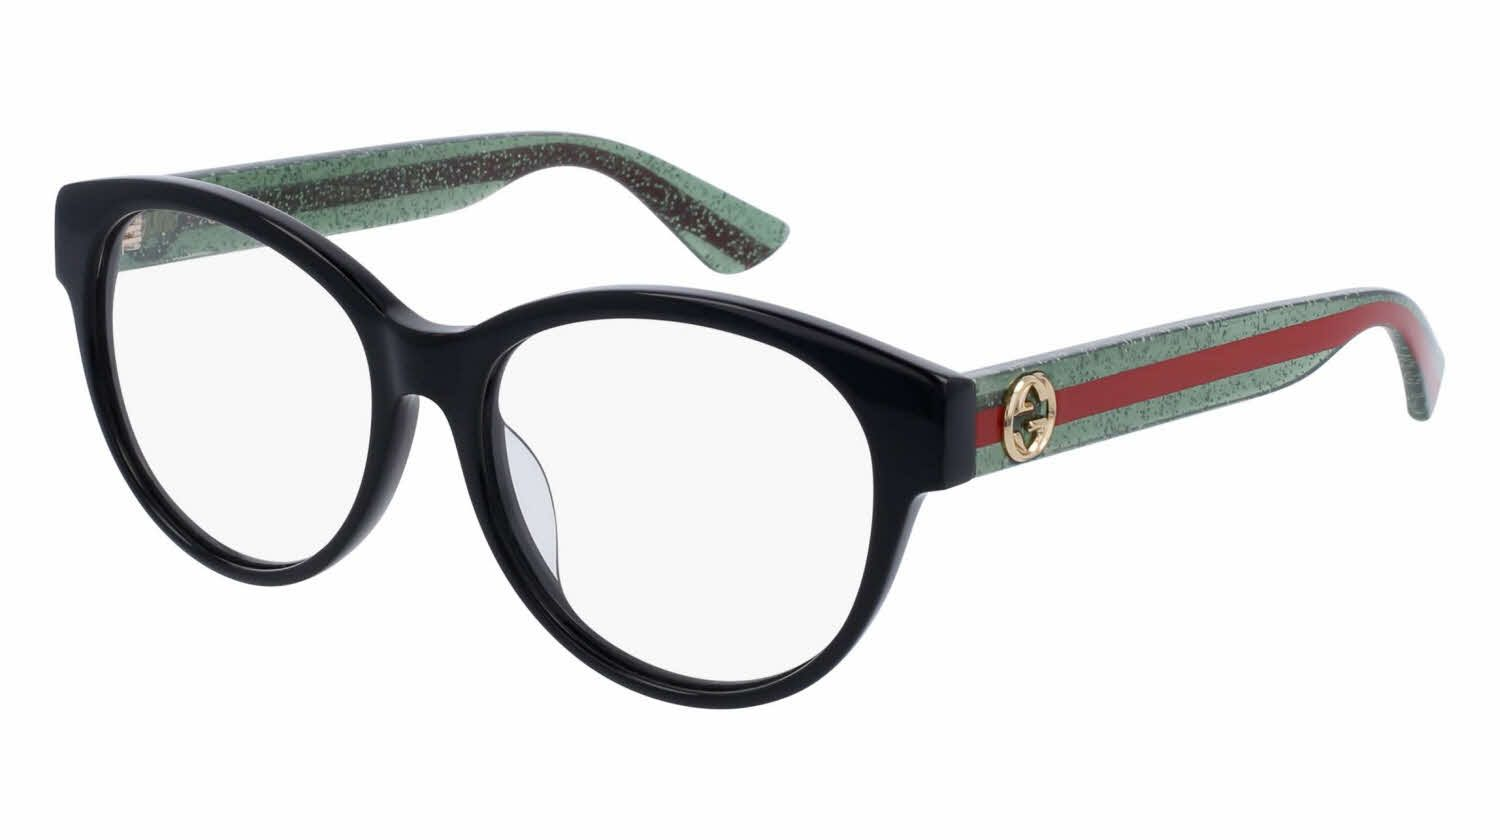 b158a3e354 Chic stripe Gucci GG0039OA - Alternate Fit Eyeglasses | 50% Off Lenses and  Add-Ons! + | Prescription designer frame, Price Match Guarantee